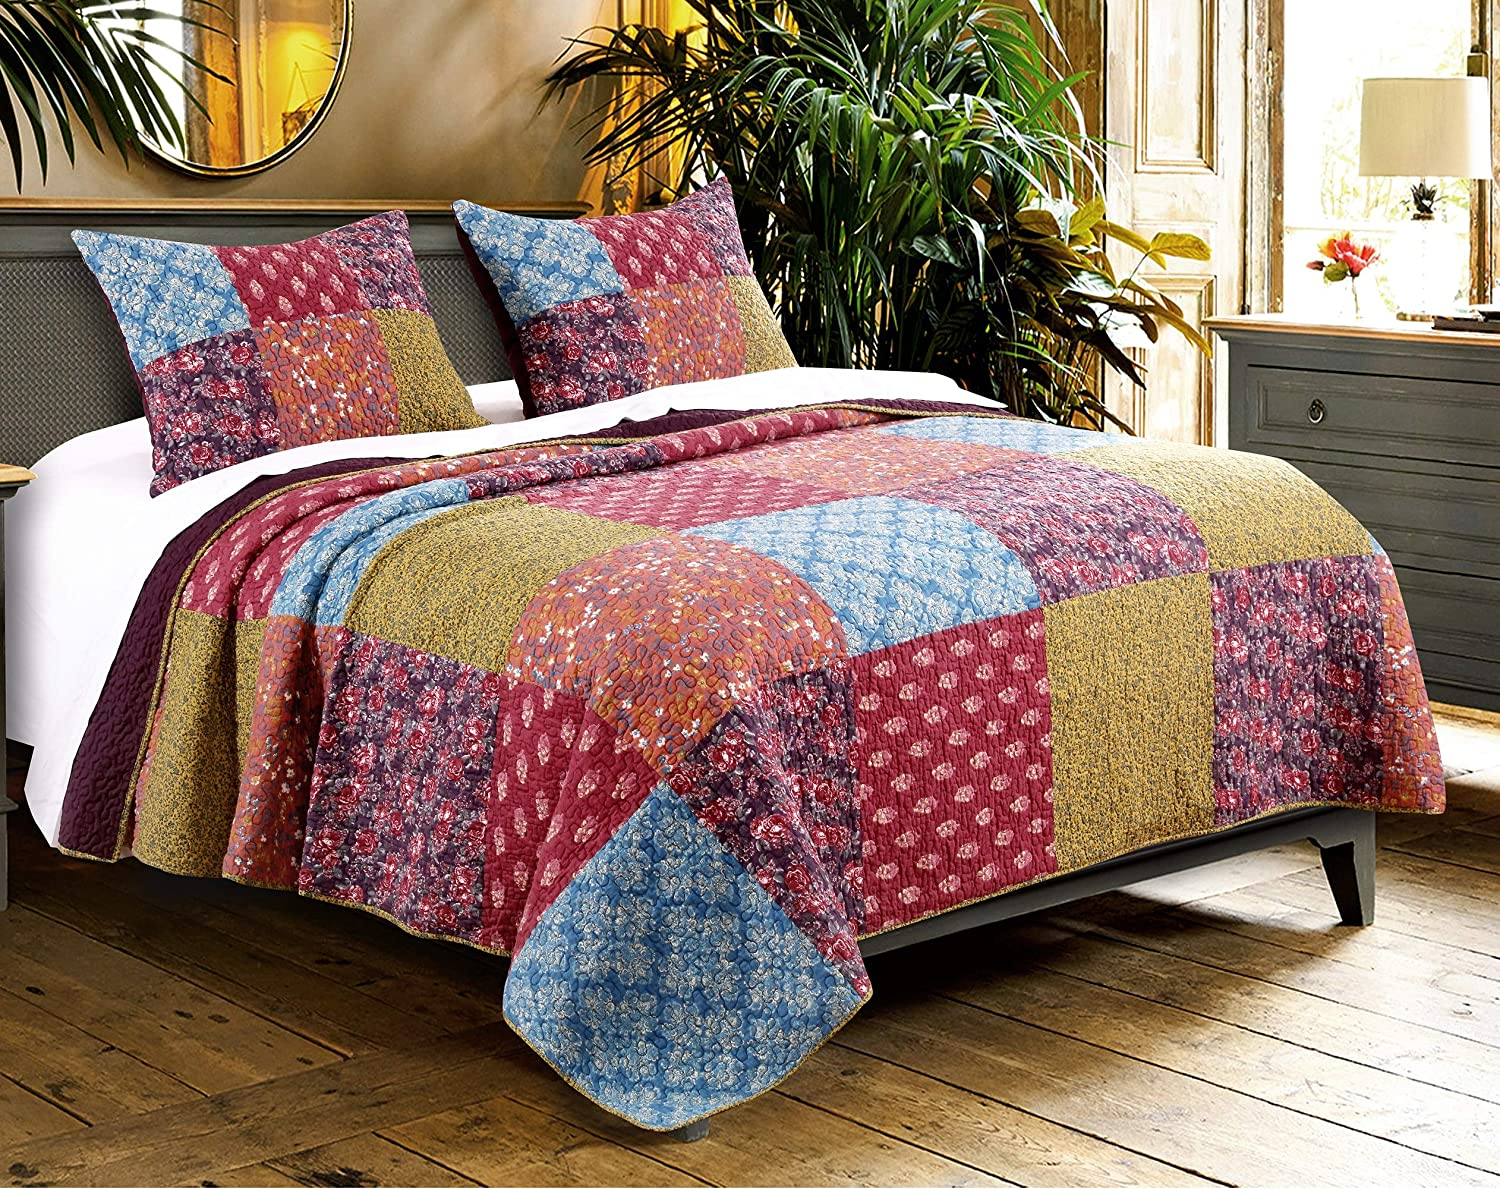 Barefoot Bungalow Normandy Quilt Portland Mall Omaha Mall Multi Set King